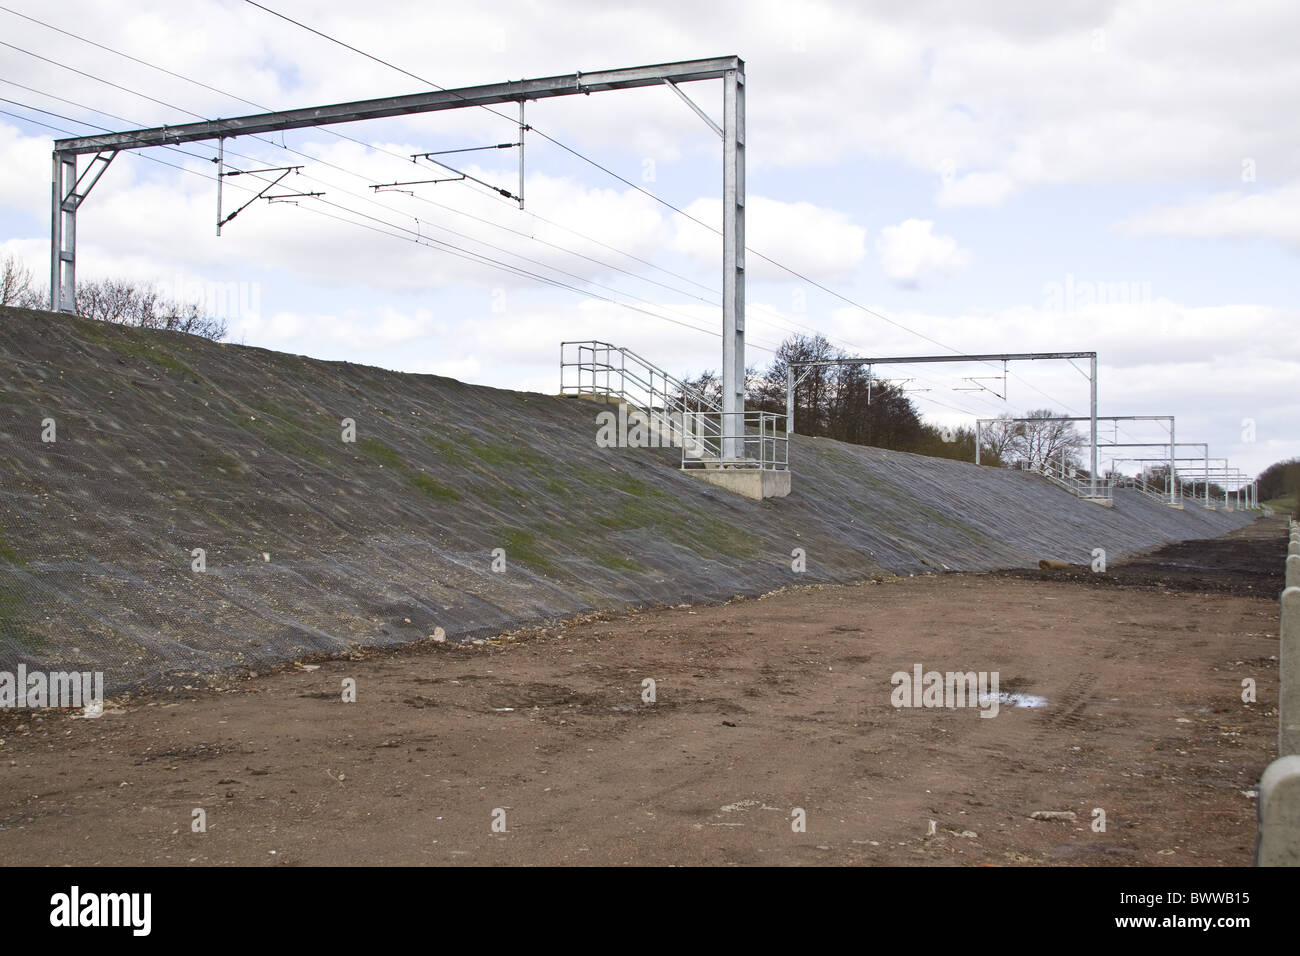 Railway embankment with mat netting used controle - Stock Image